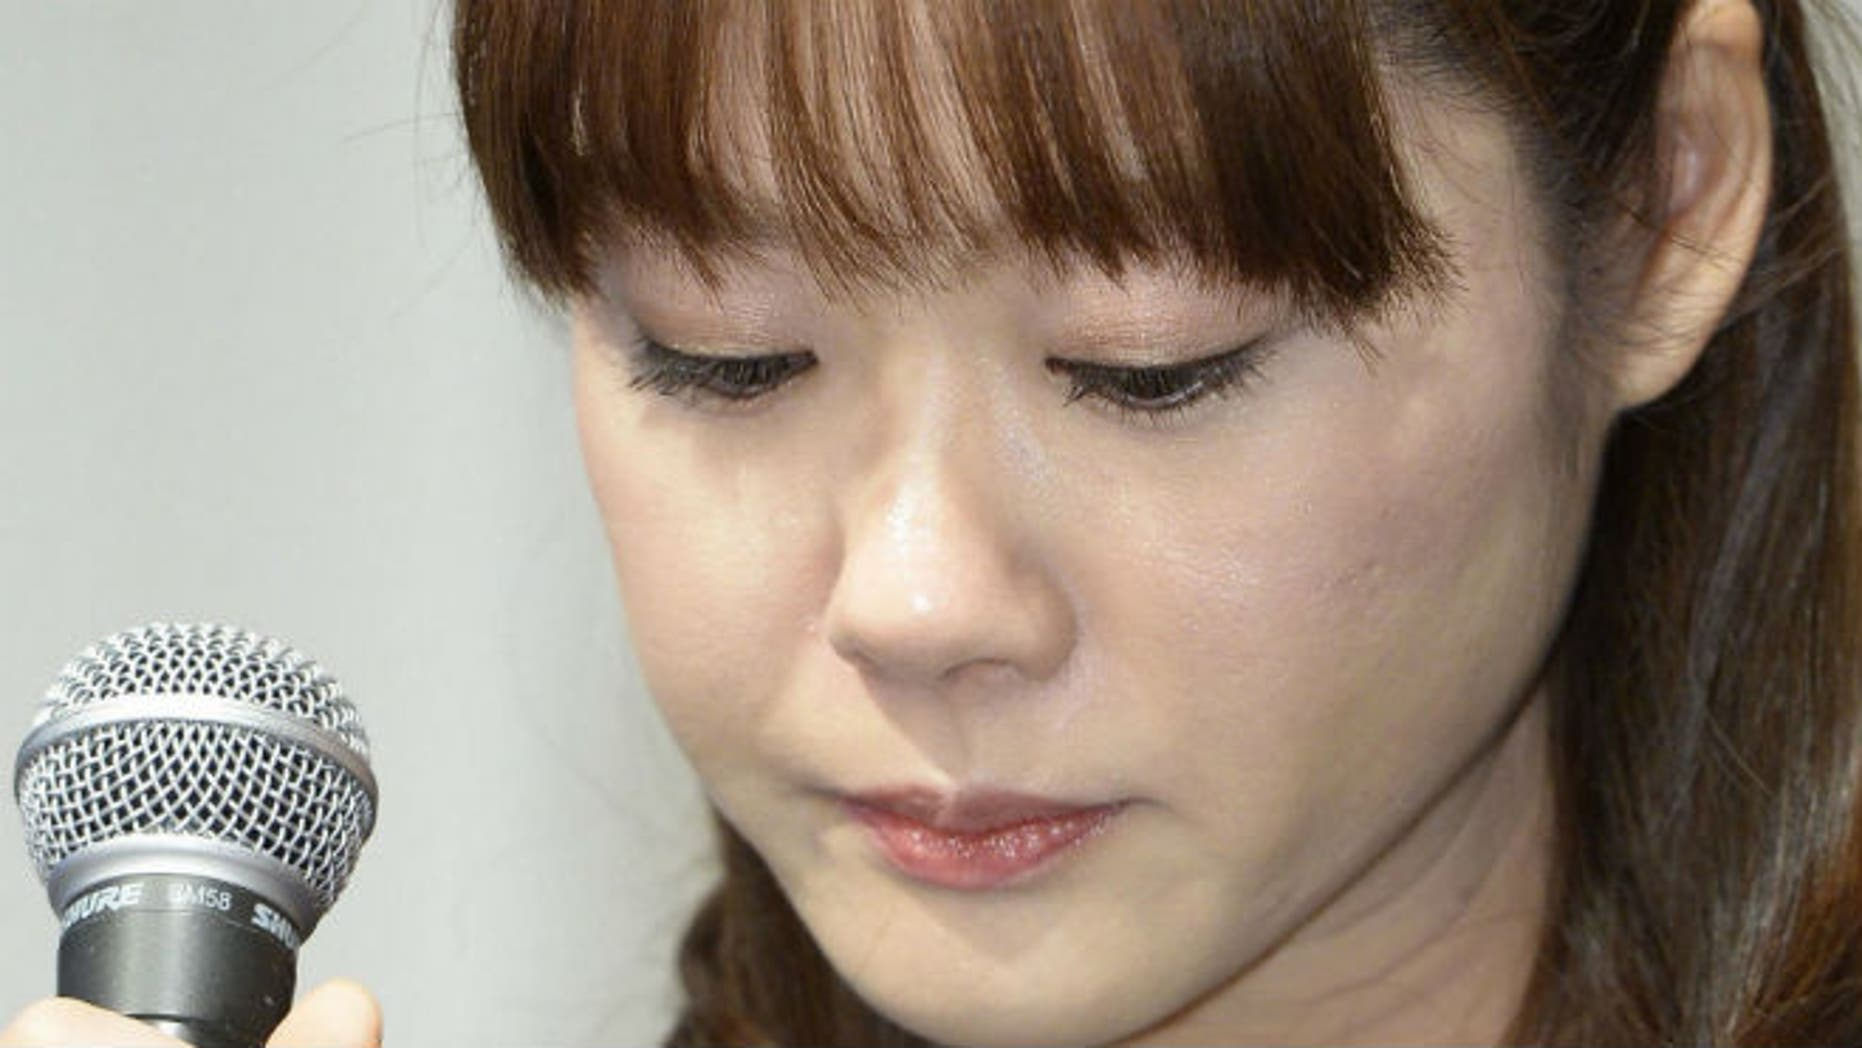 Haruko Obokata, a researcher at semi-governmental research institute RIKEN, lowers her eyes during a news conference in Osaka, western Japan, in this photo taken by Kyodo April 9, 2014. REUTERS/Kyodo